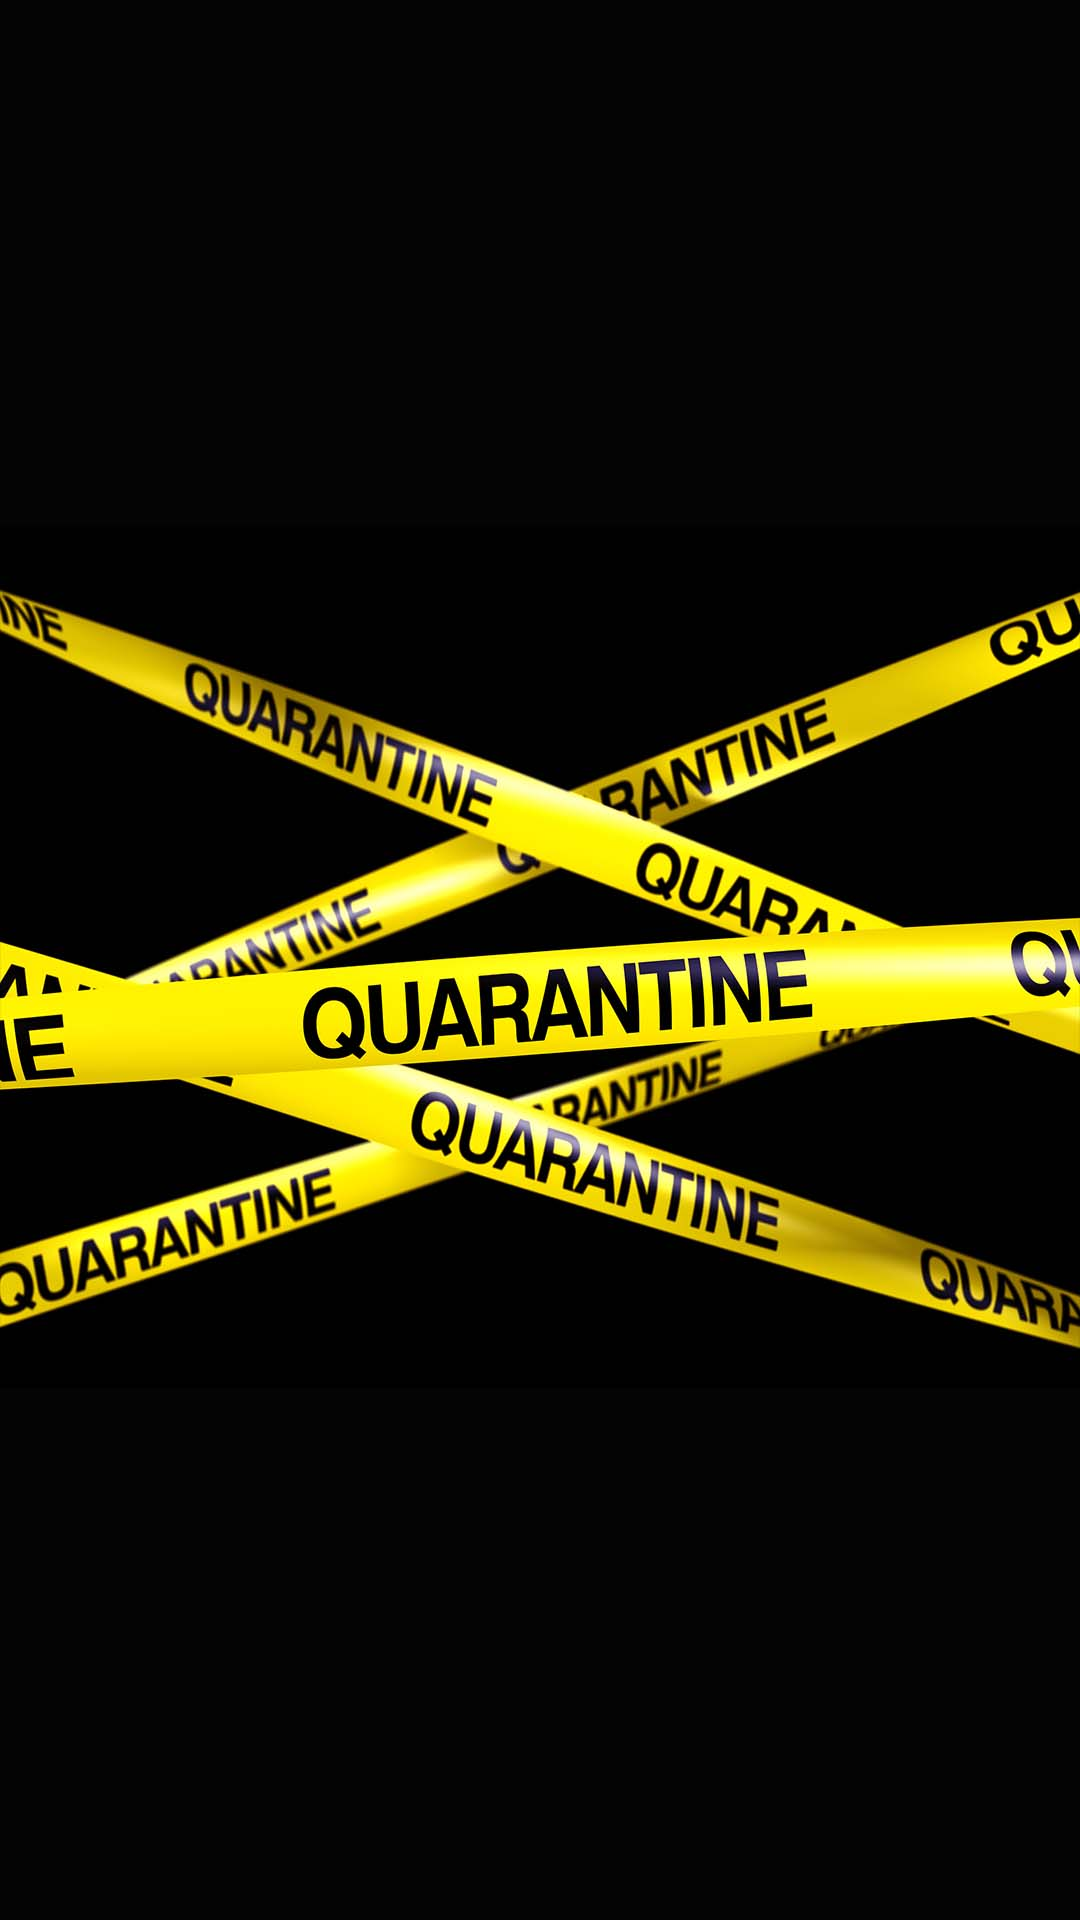 Quarantine iPhone Wallpaper